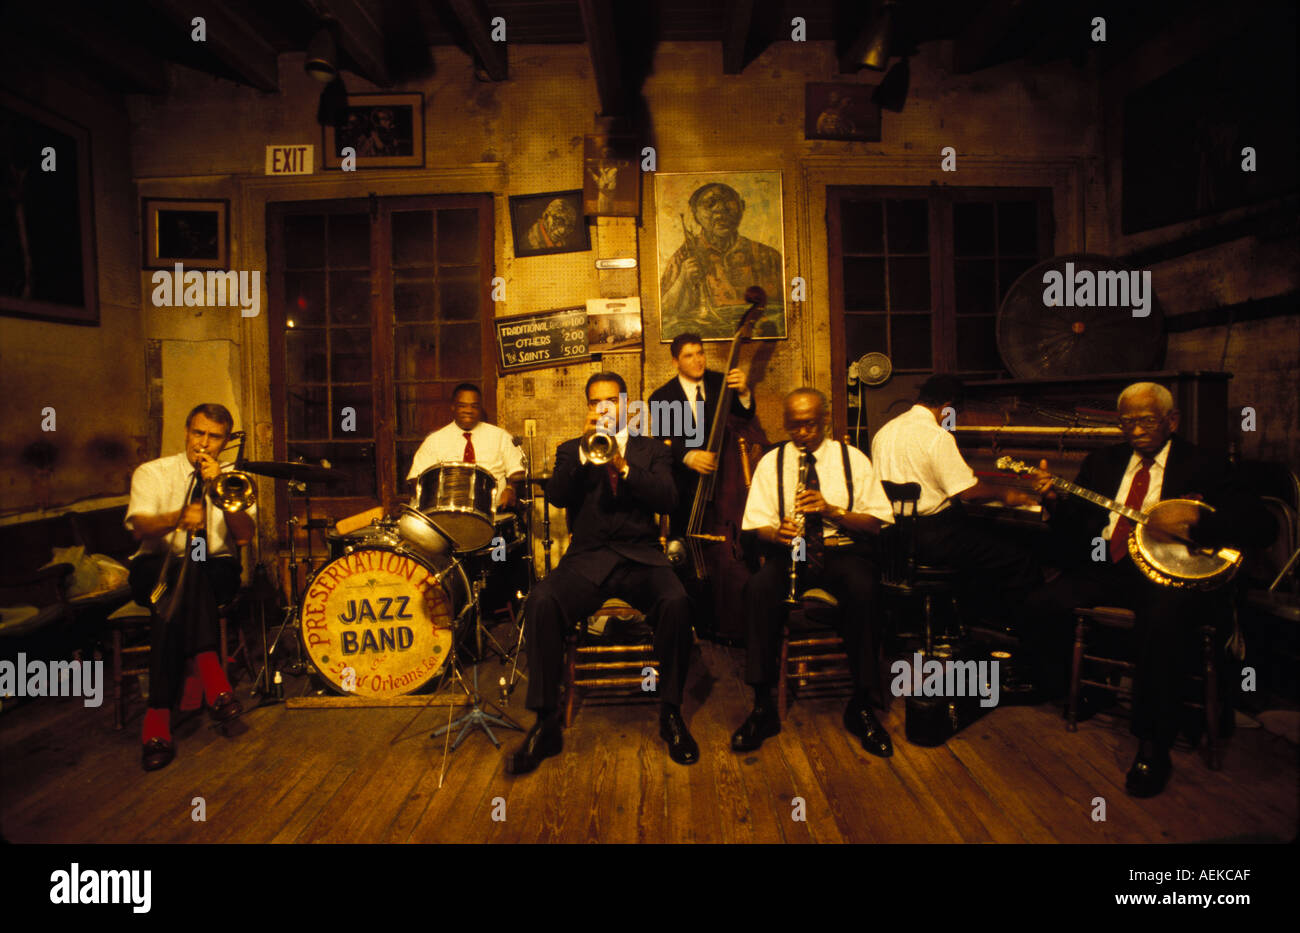 Preservaion Hall Jazz Band New Orleans - Stock Image